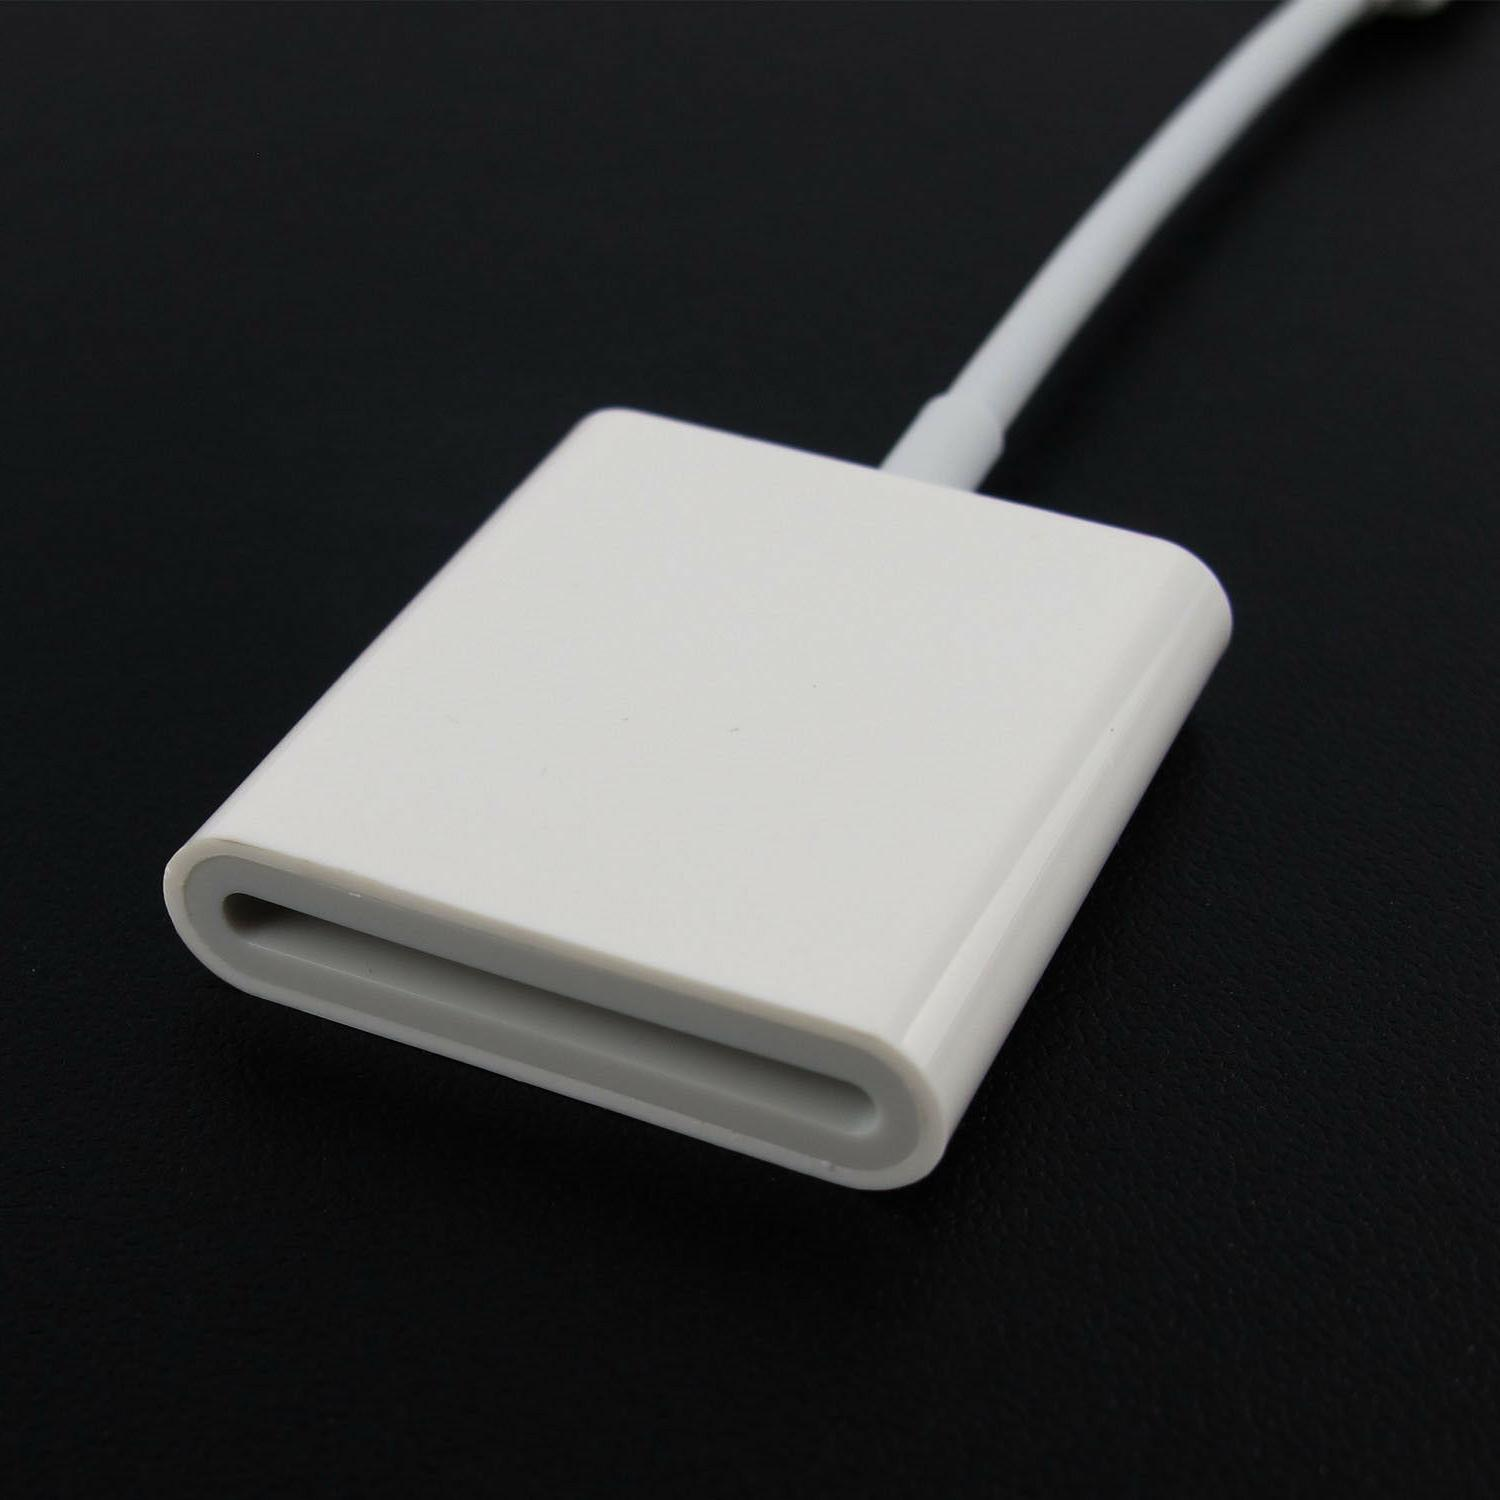 USB 3.1 Type USB-C SD Card Adapter for Samsung